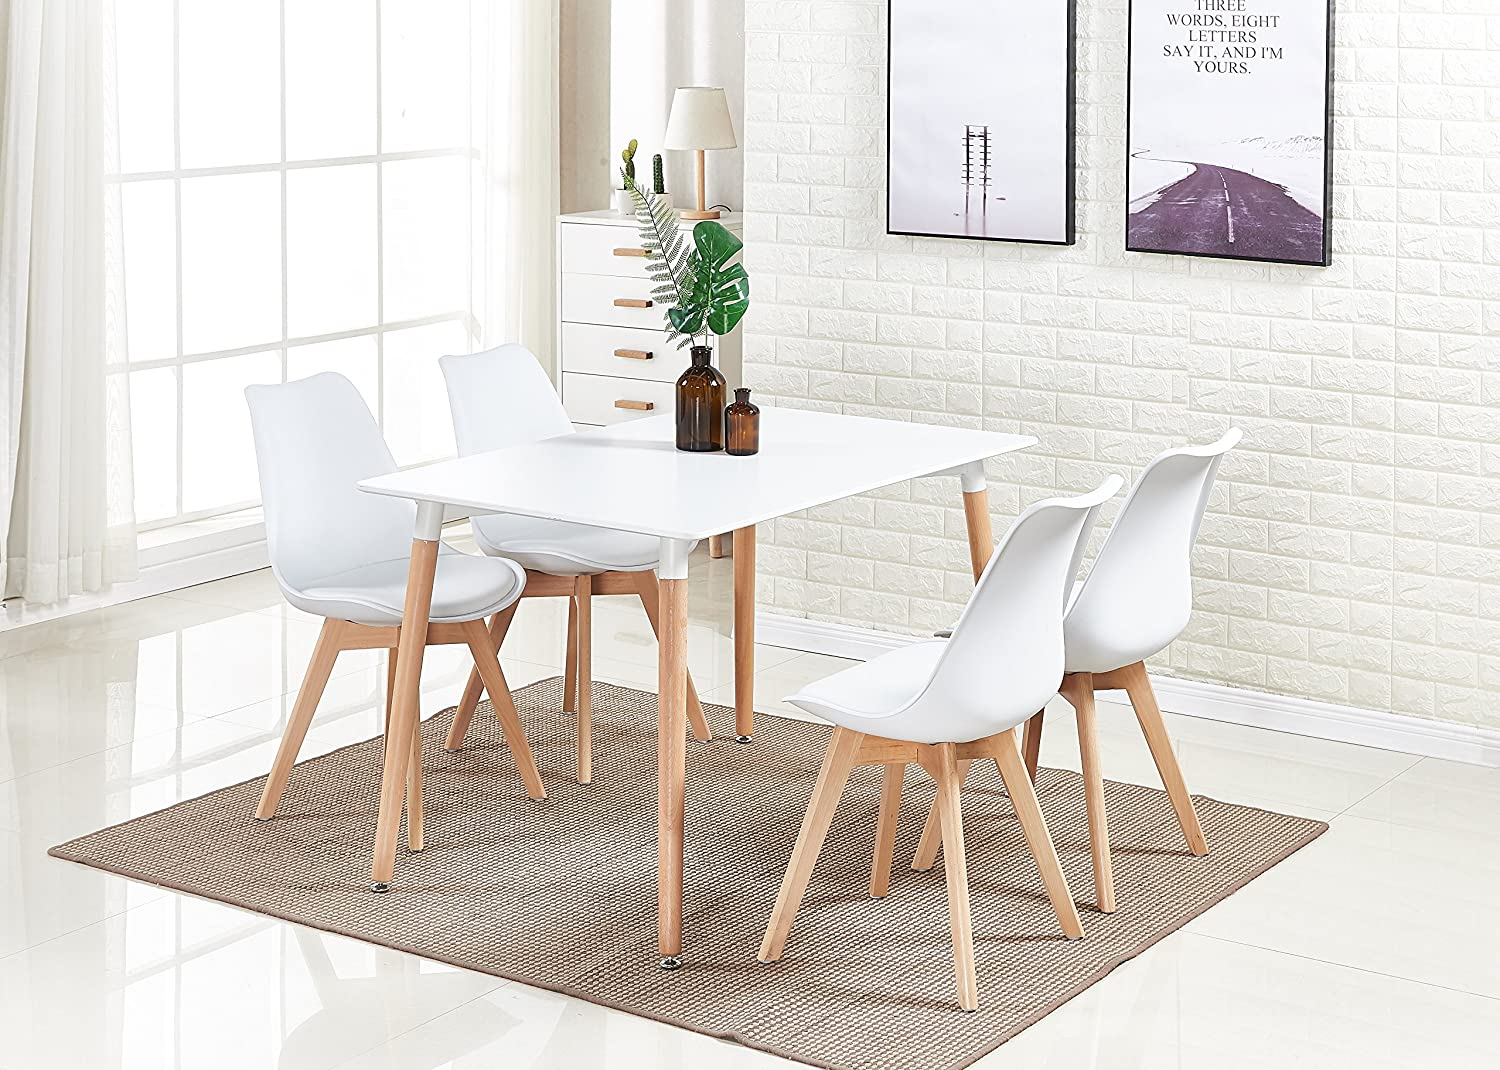 P N Homewares Lorenzo Dining Table And 4 Chairs Set Retro And Modern Dining Set White Black And Grey Chairs With White Dining Table White Chairs Amazon Co Uk Kitchen Home